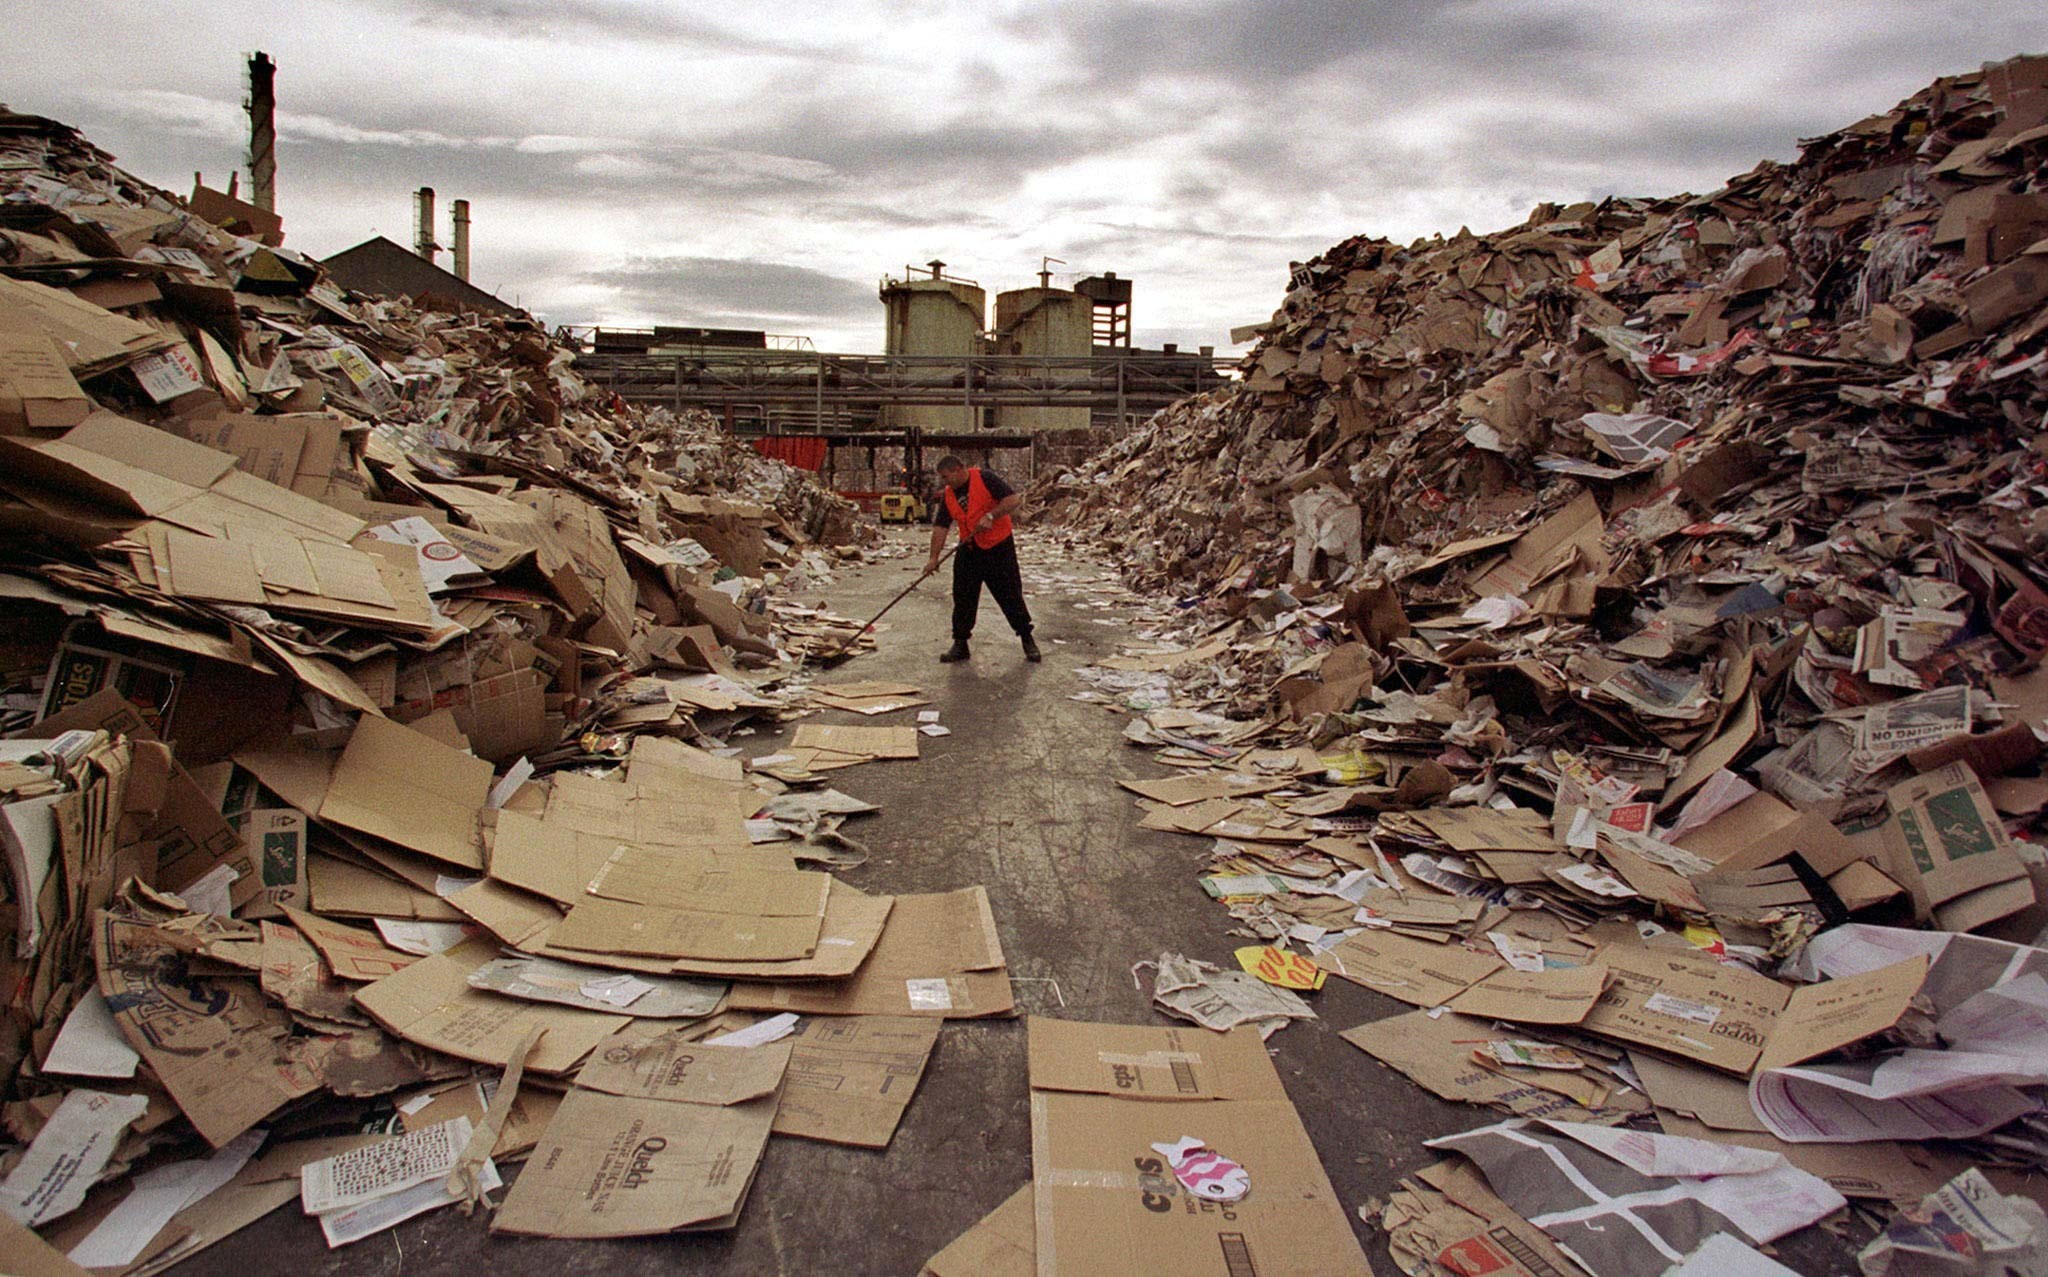 A worker cleans a path through the tonnes of waste paper awaiting recycling at Australia's largest paper recycling mill in Sydney. Prices for recycling paper, plastic and bottles have fallen so far in the last year that Australia is paying Indonesia to accept some of the A$100 million (US$76 million) a year industry. Picture taken 6JUN97. - PBEAHUMMQBD